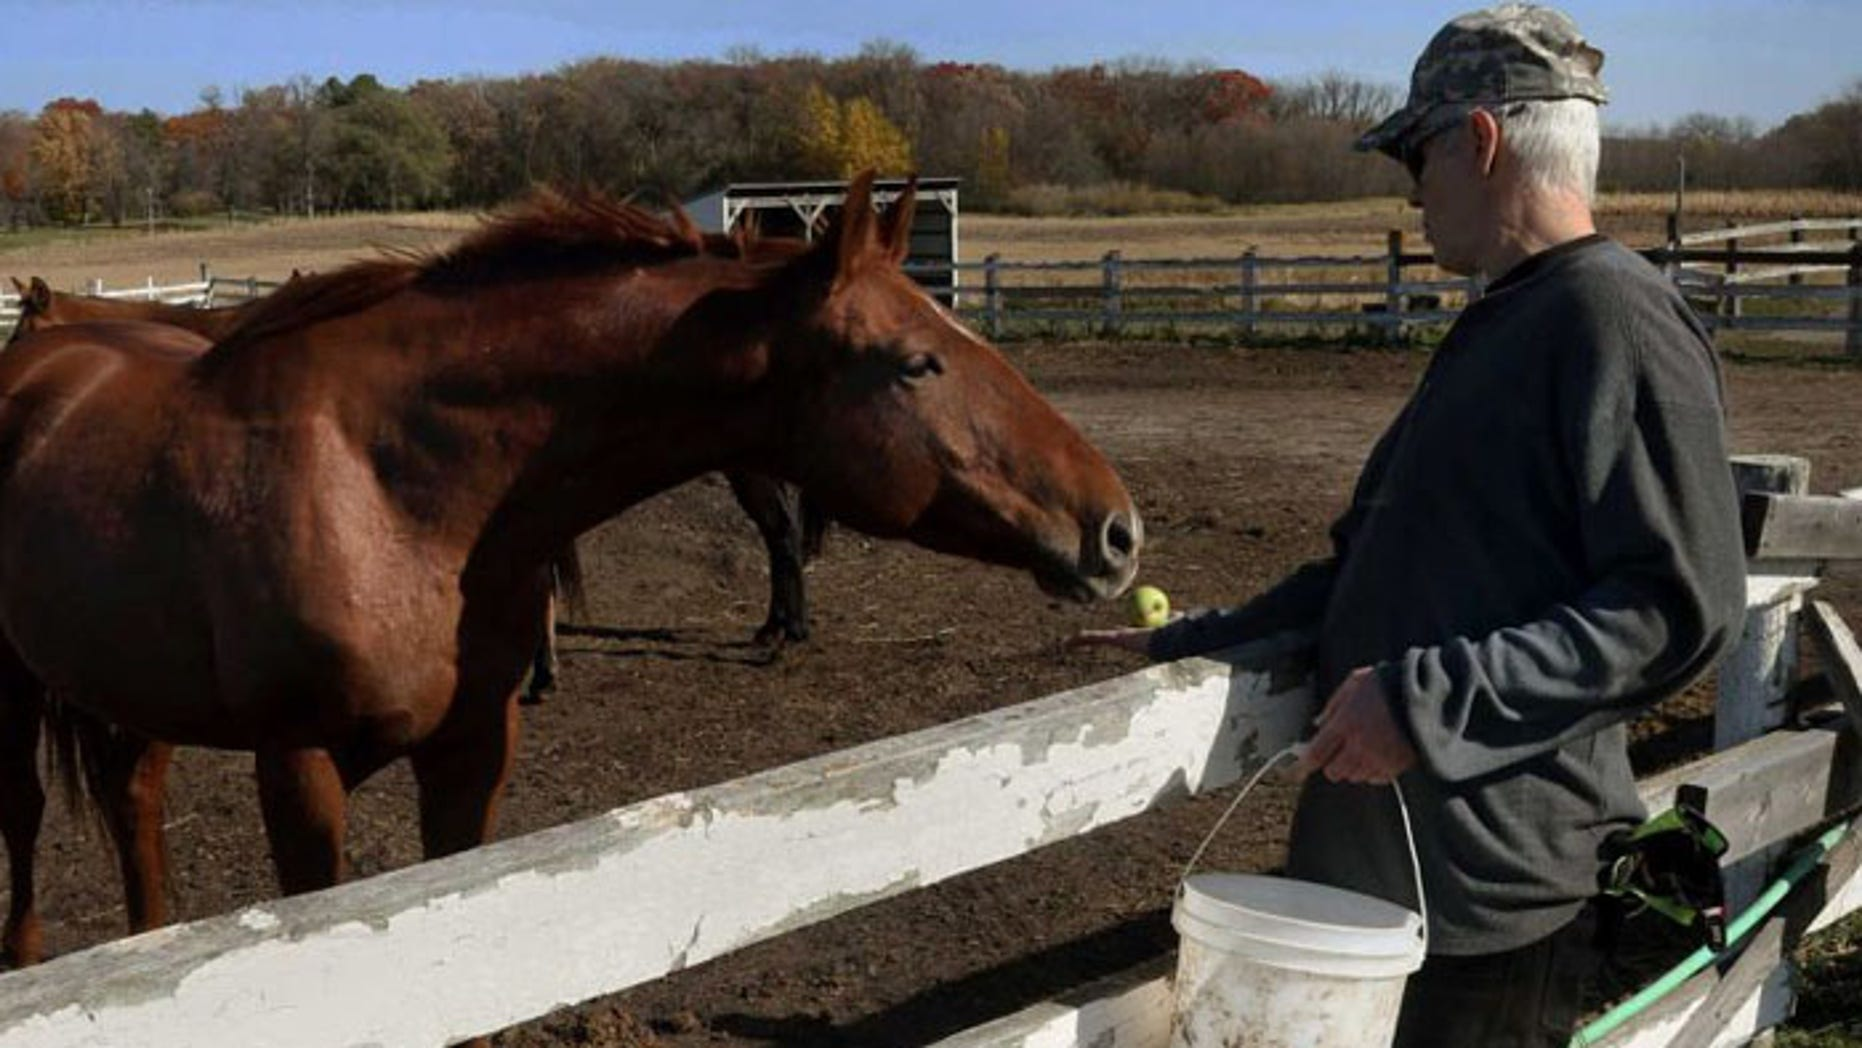 Randy Johnson offers an apple to a horse at Eagle's Healing Nest, a retreat for veterans, in Sauk Centre, Minn. (AP Photo/Jim Mone)